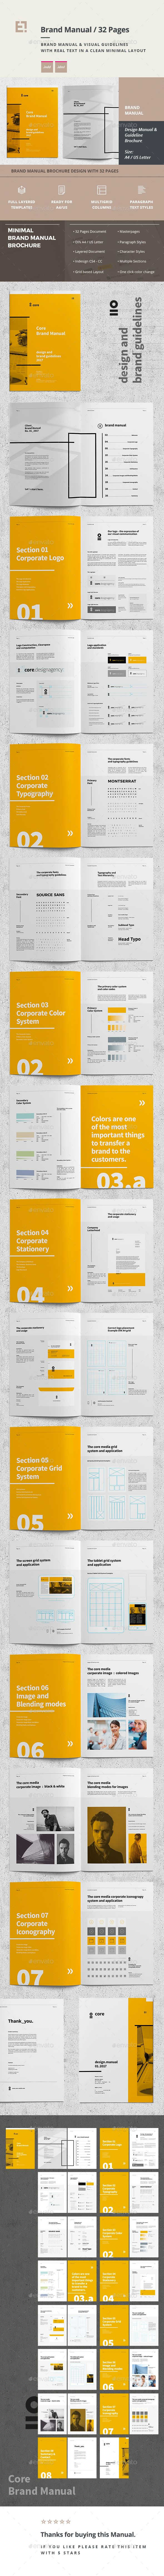 Brand Manual - #Corporate #Brochures Download here: https://graphicriver.net/item/brand-manual/19539974?ref=alena994